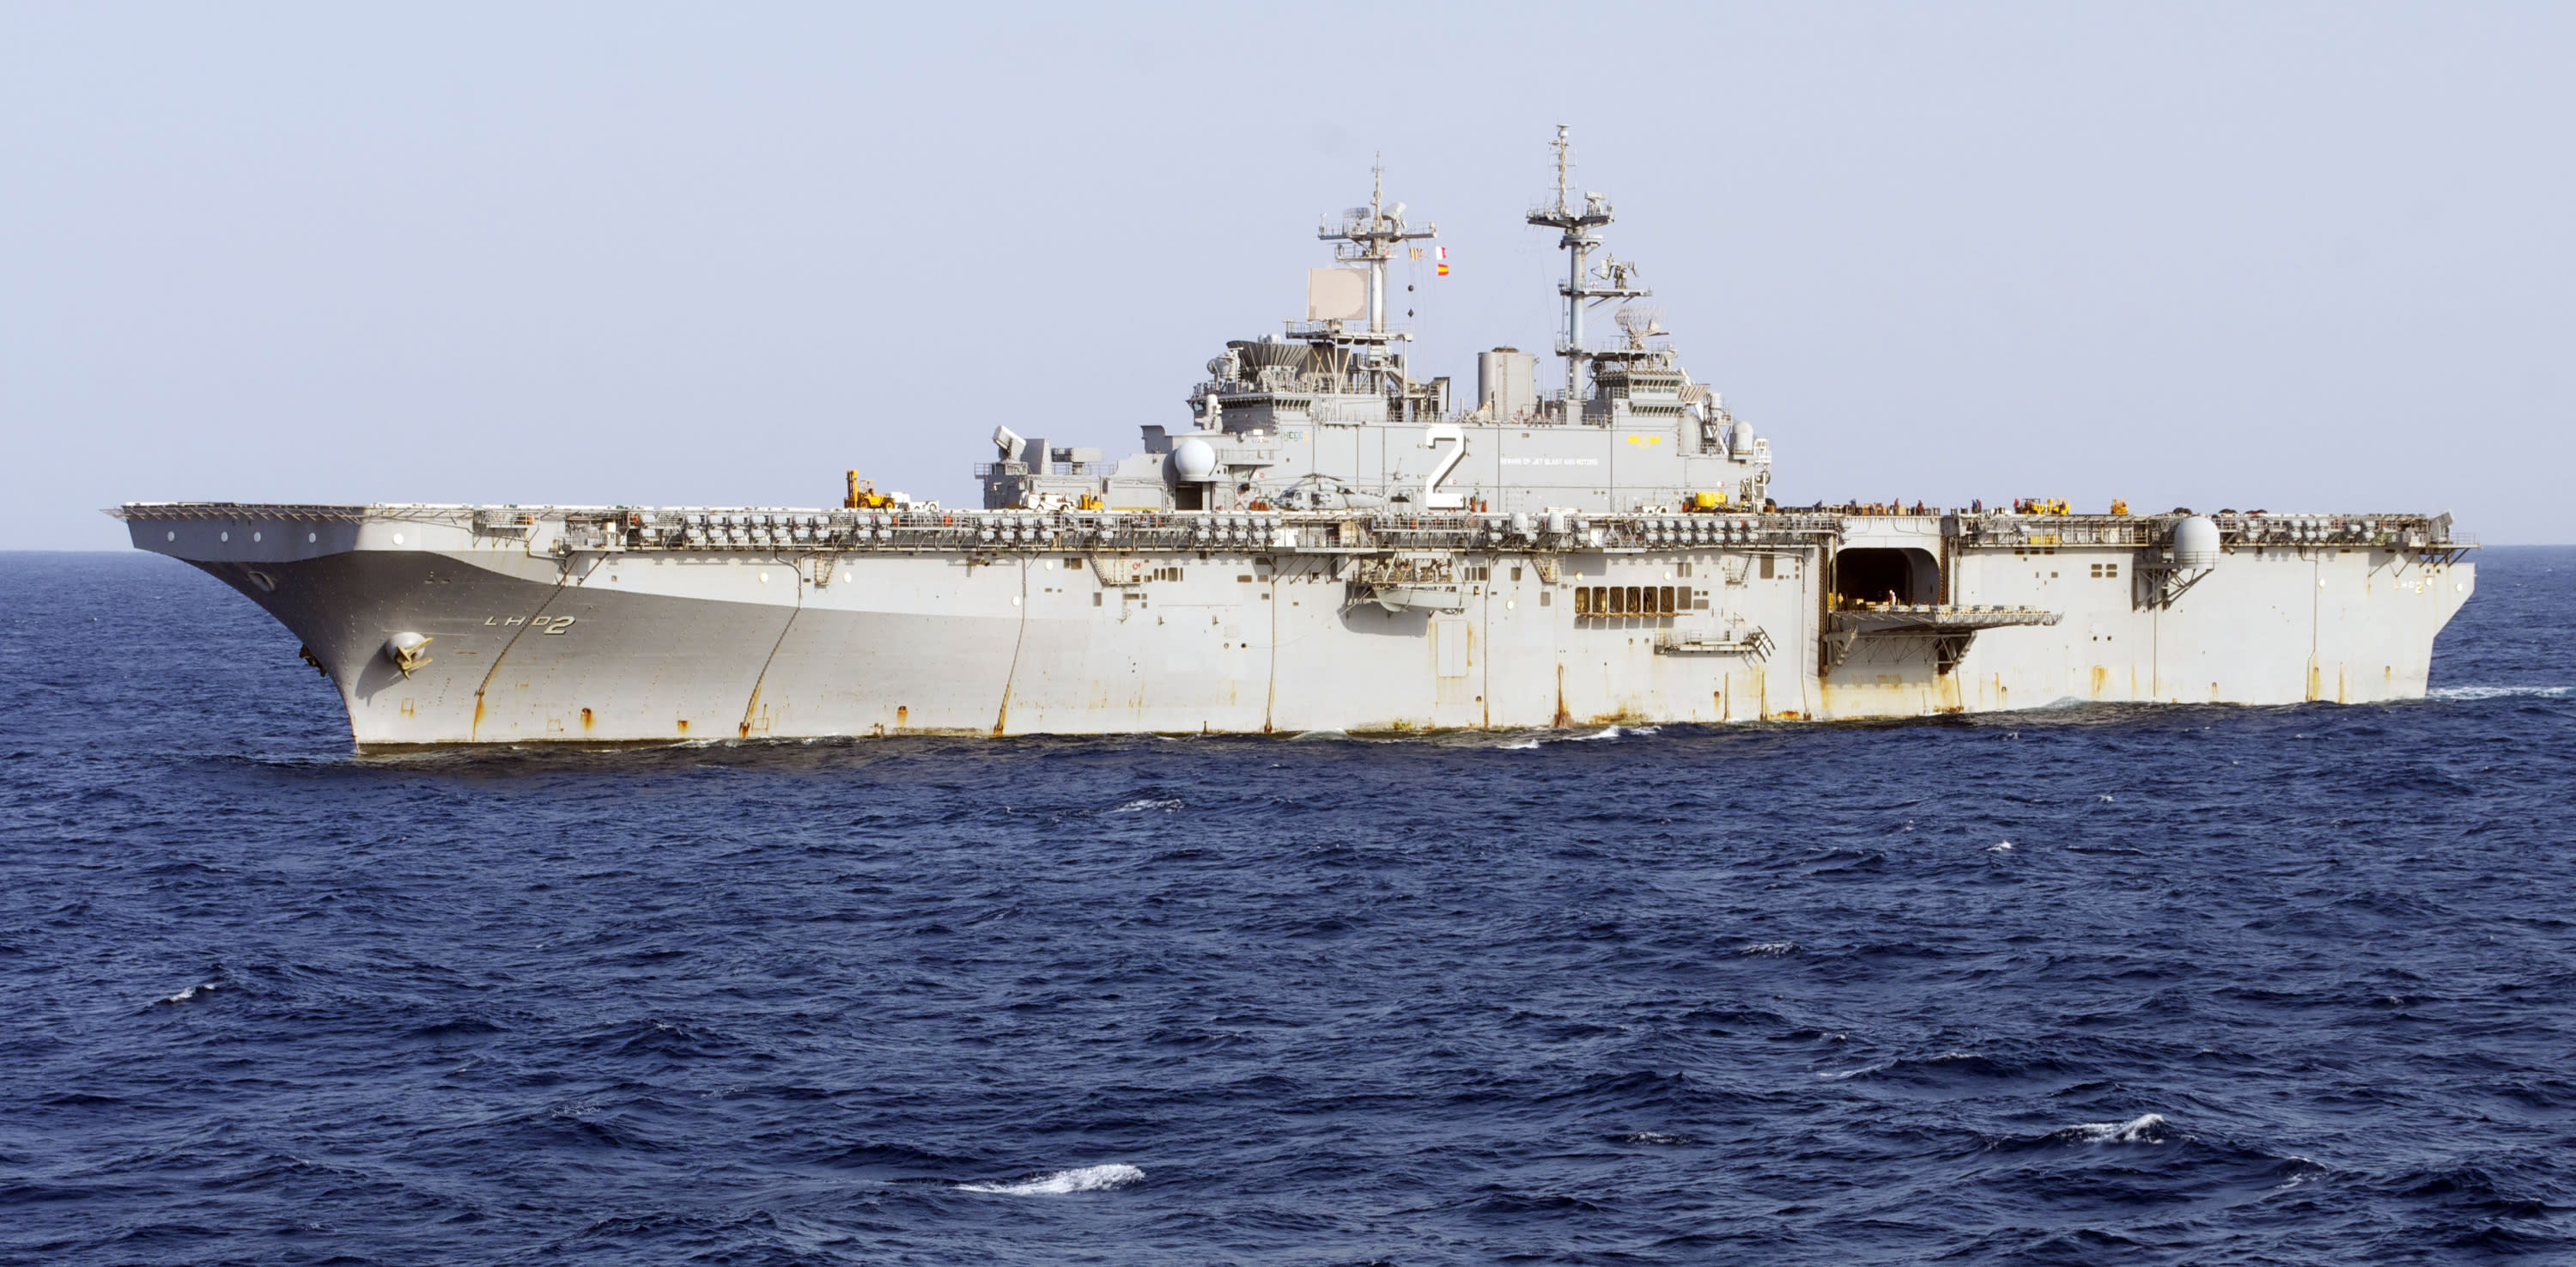 This undated image provided by the U.S. Navy shows the amphibious assault ship USS Essex underway in the Pacific Ocean. The Essex and a refueling tanker, the USNS Yukon, collided in the Pacific Ocean on Wednesday May 16,2012, but there were no injuries and no fuel spills, the 3rd Fleet said. (AP Photo/U.S. Navy, Senior Chief Mass Communication Specialist Joe Kane)